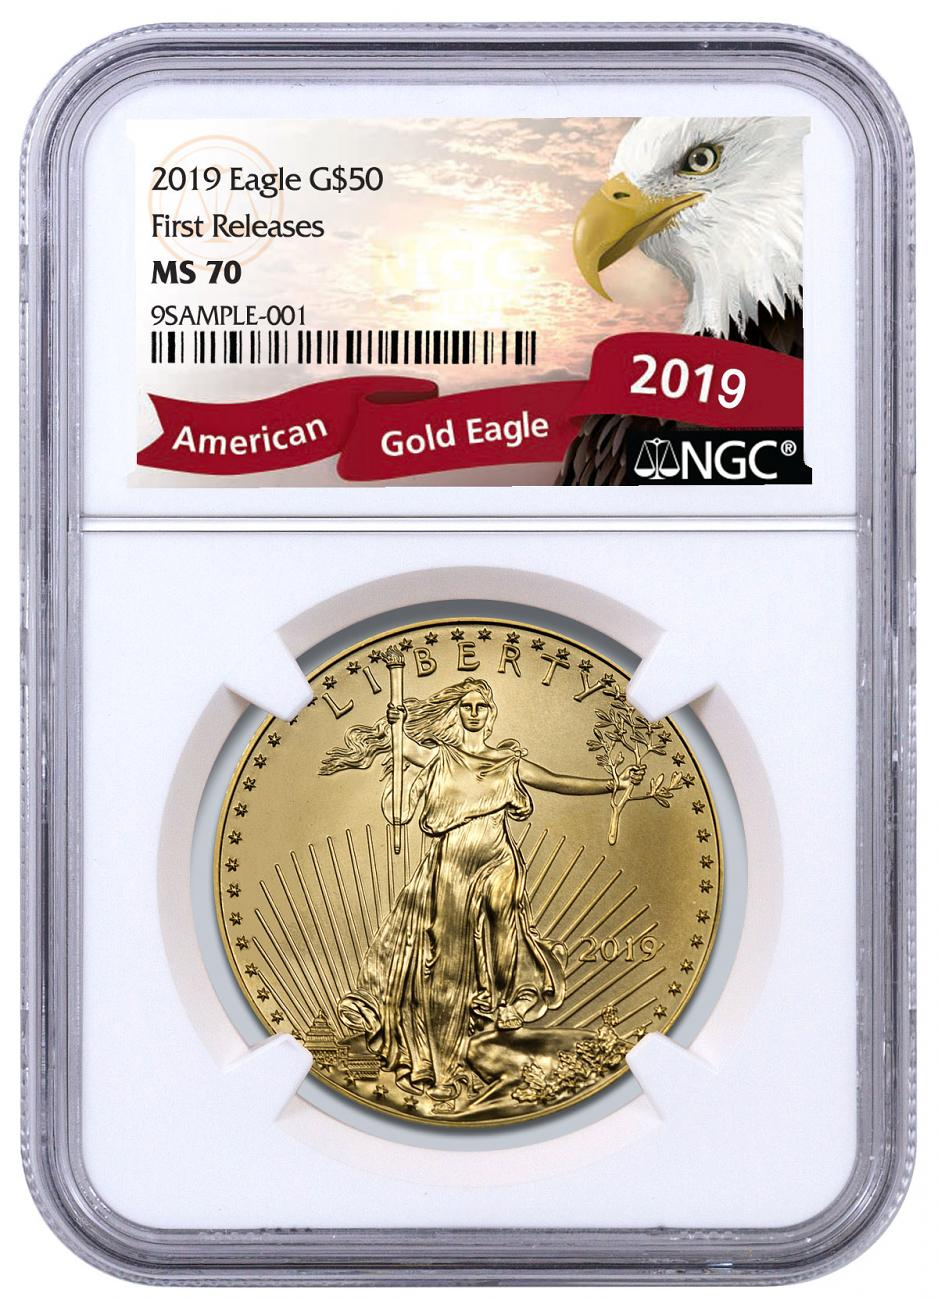 2019 1 oz Gold American Eagle $50 NGC MS70 FR Exclusive Eagle Label